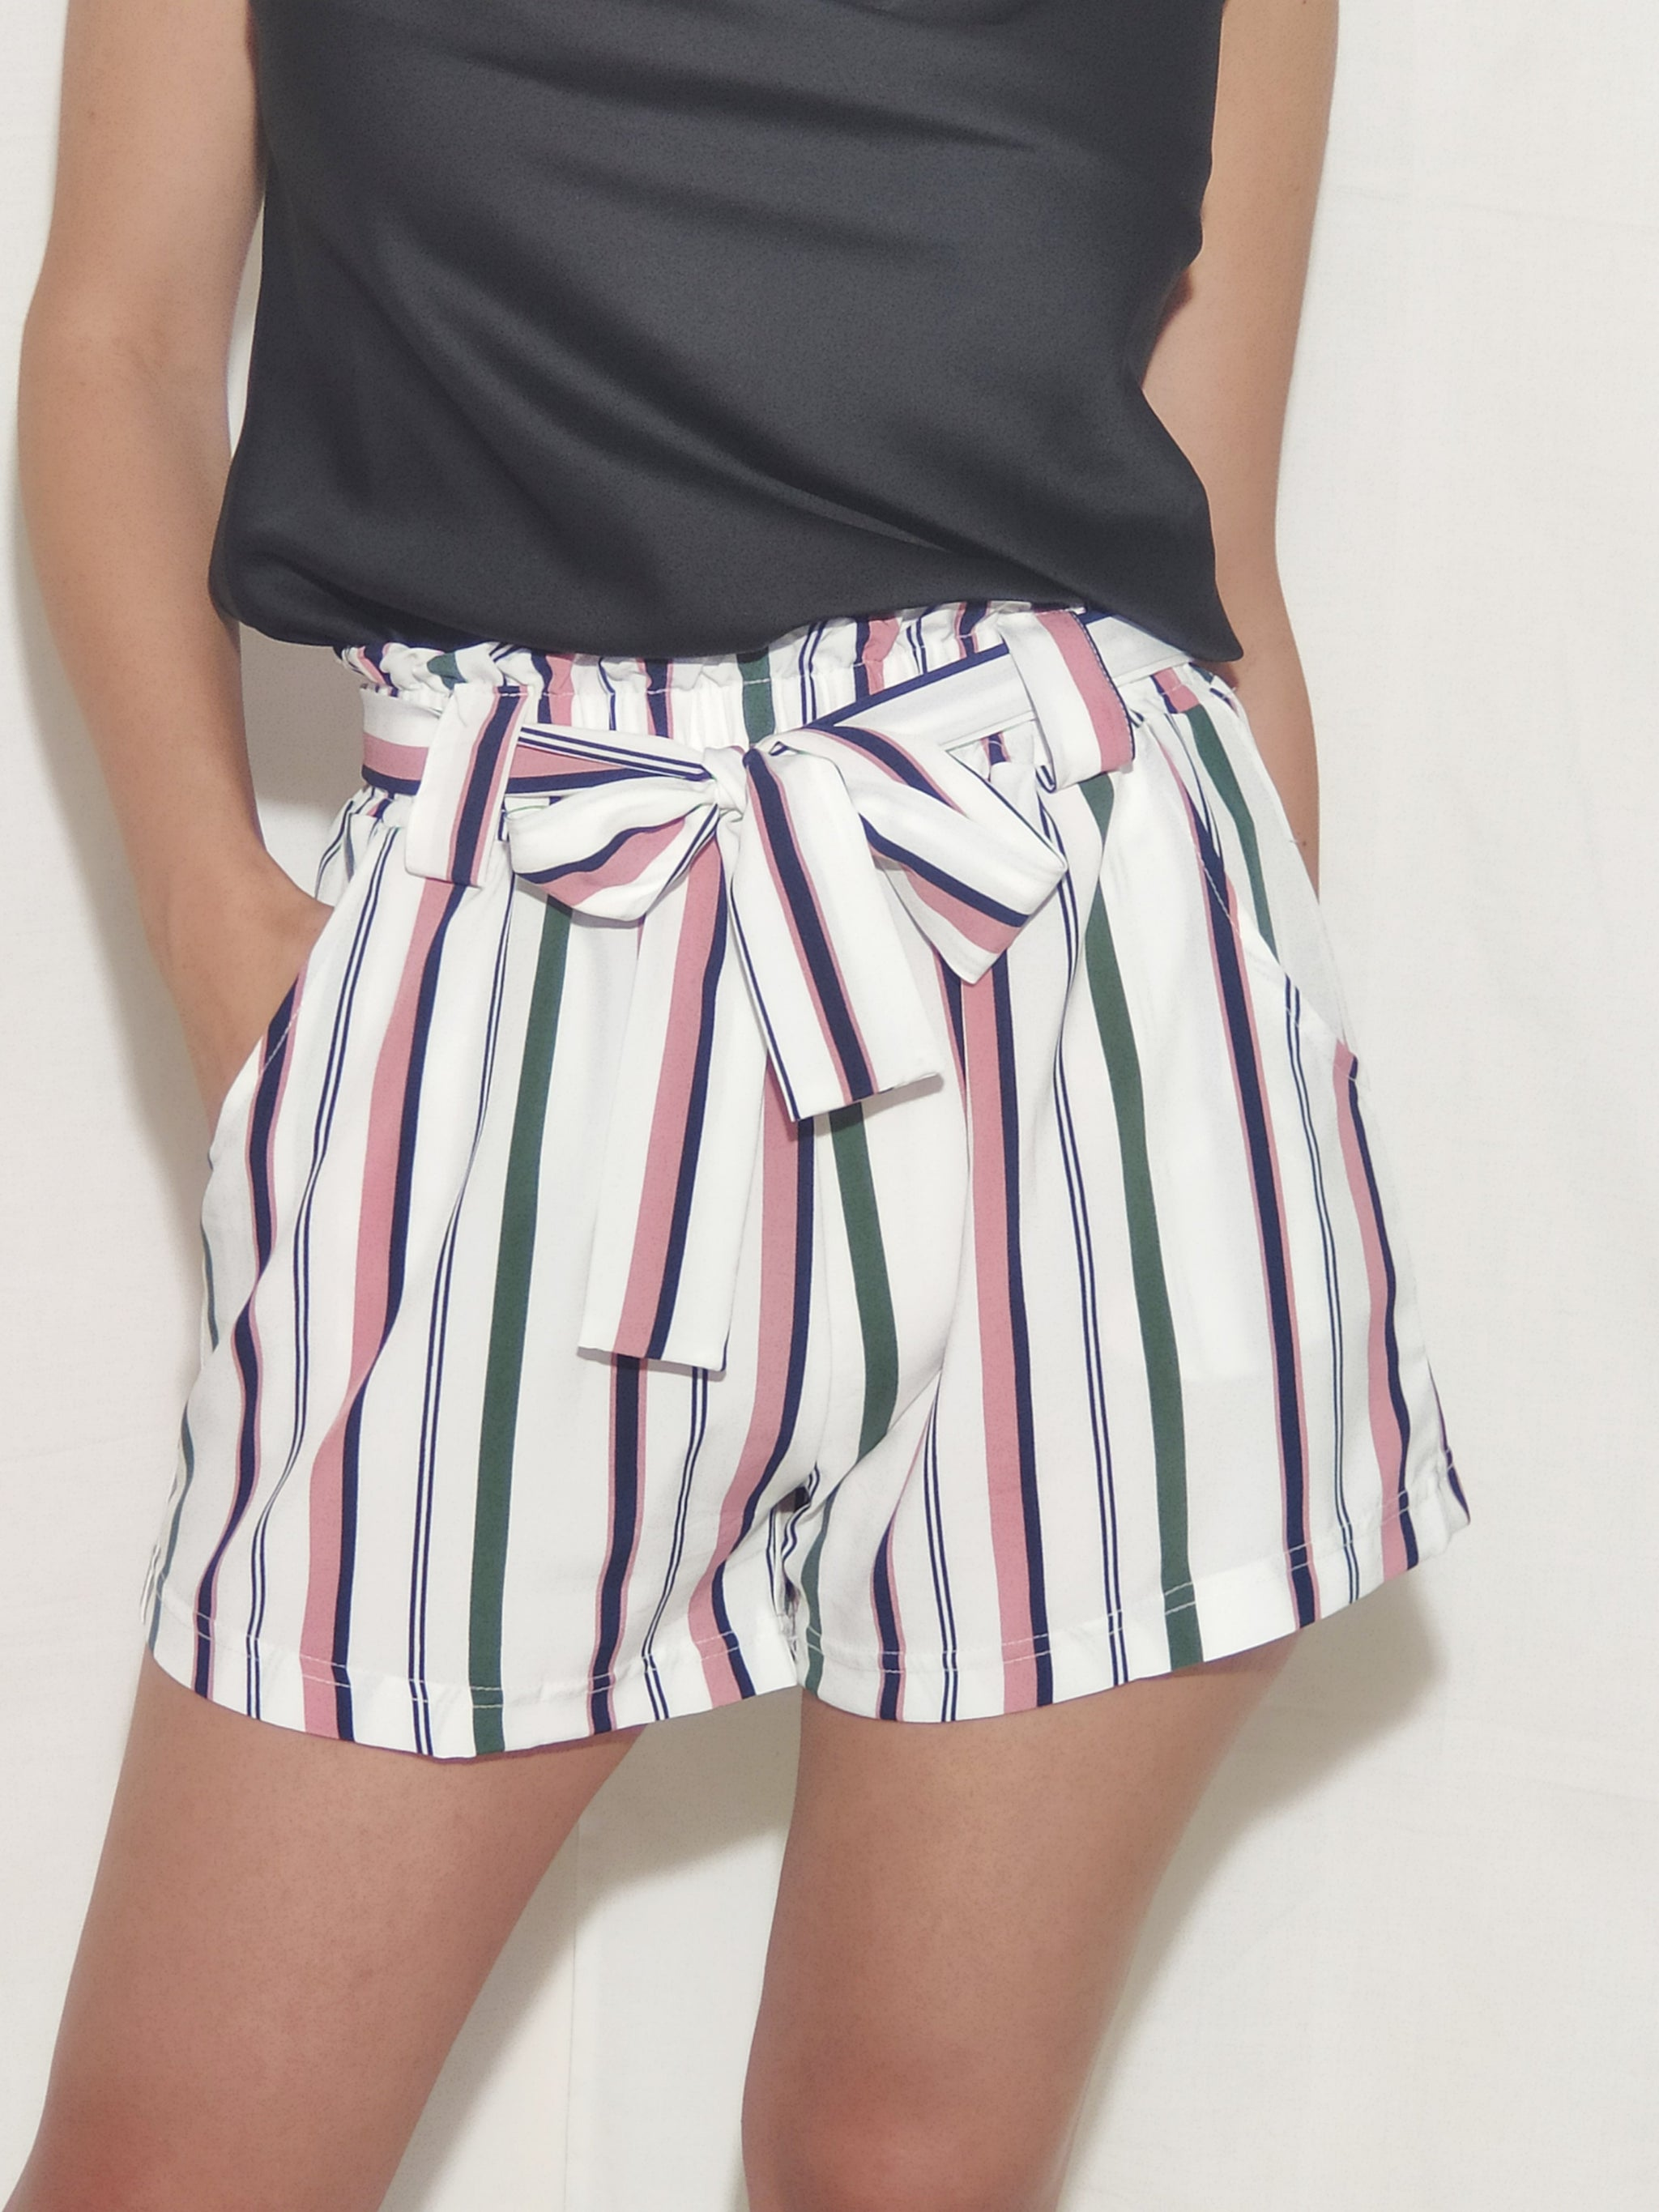 brunet-girl-wears-a-white-shorts-with-stripes-and-bow-frontside-2